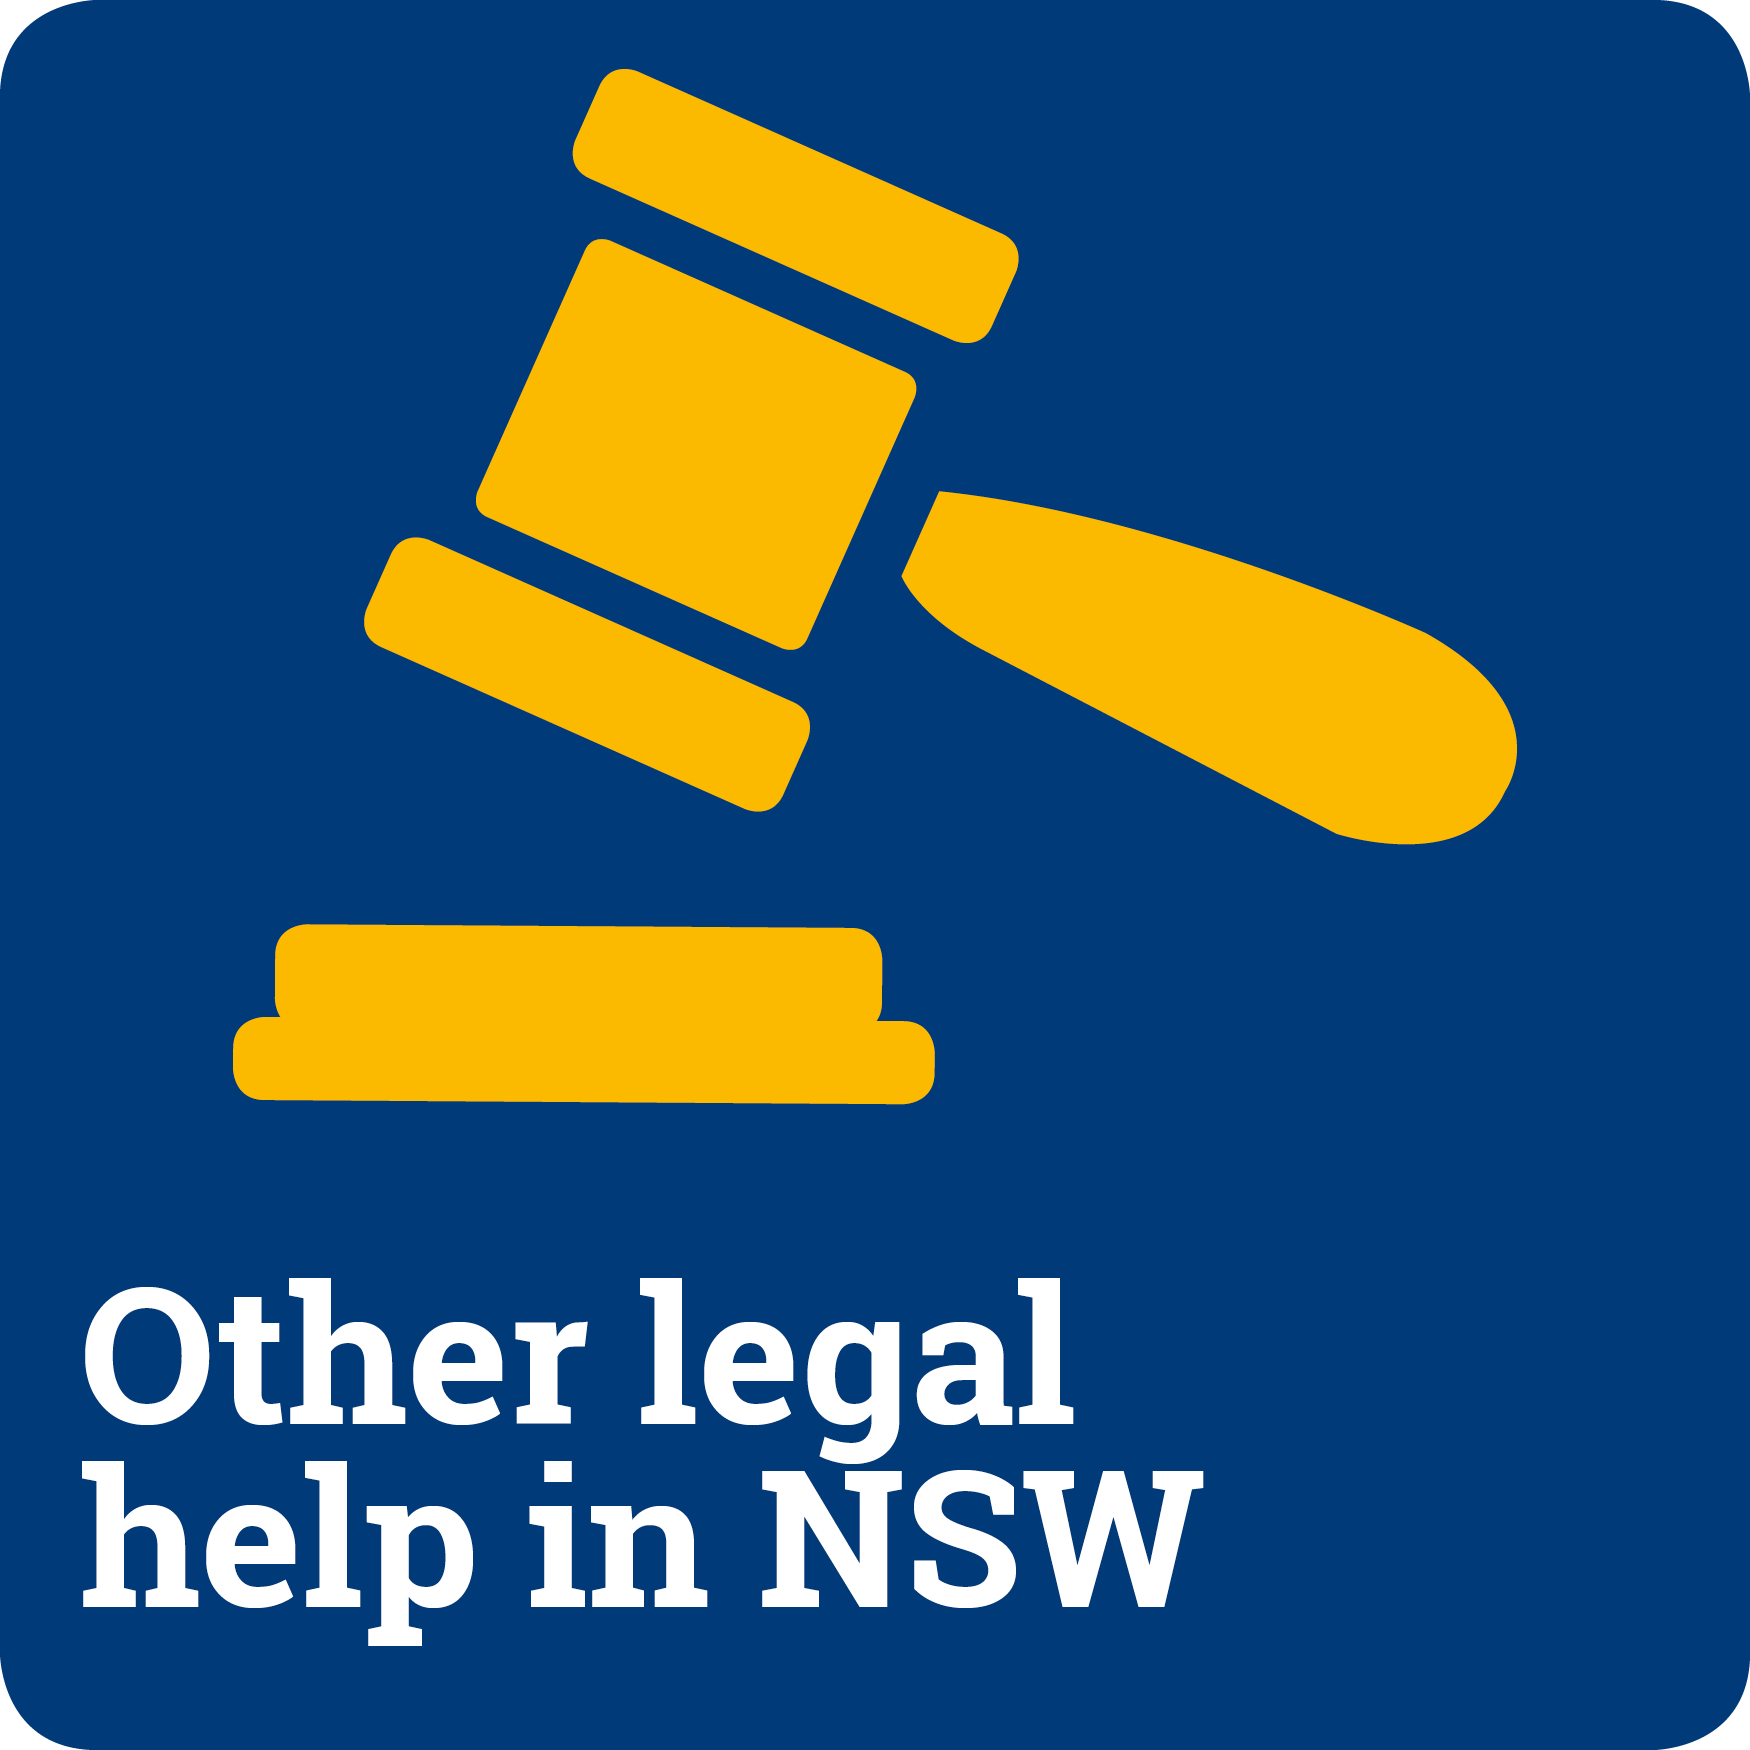 Other legal help in NSW